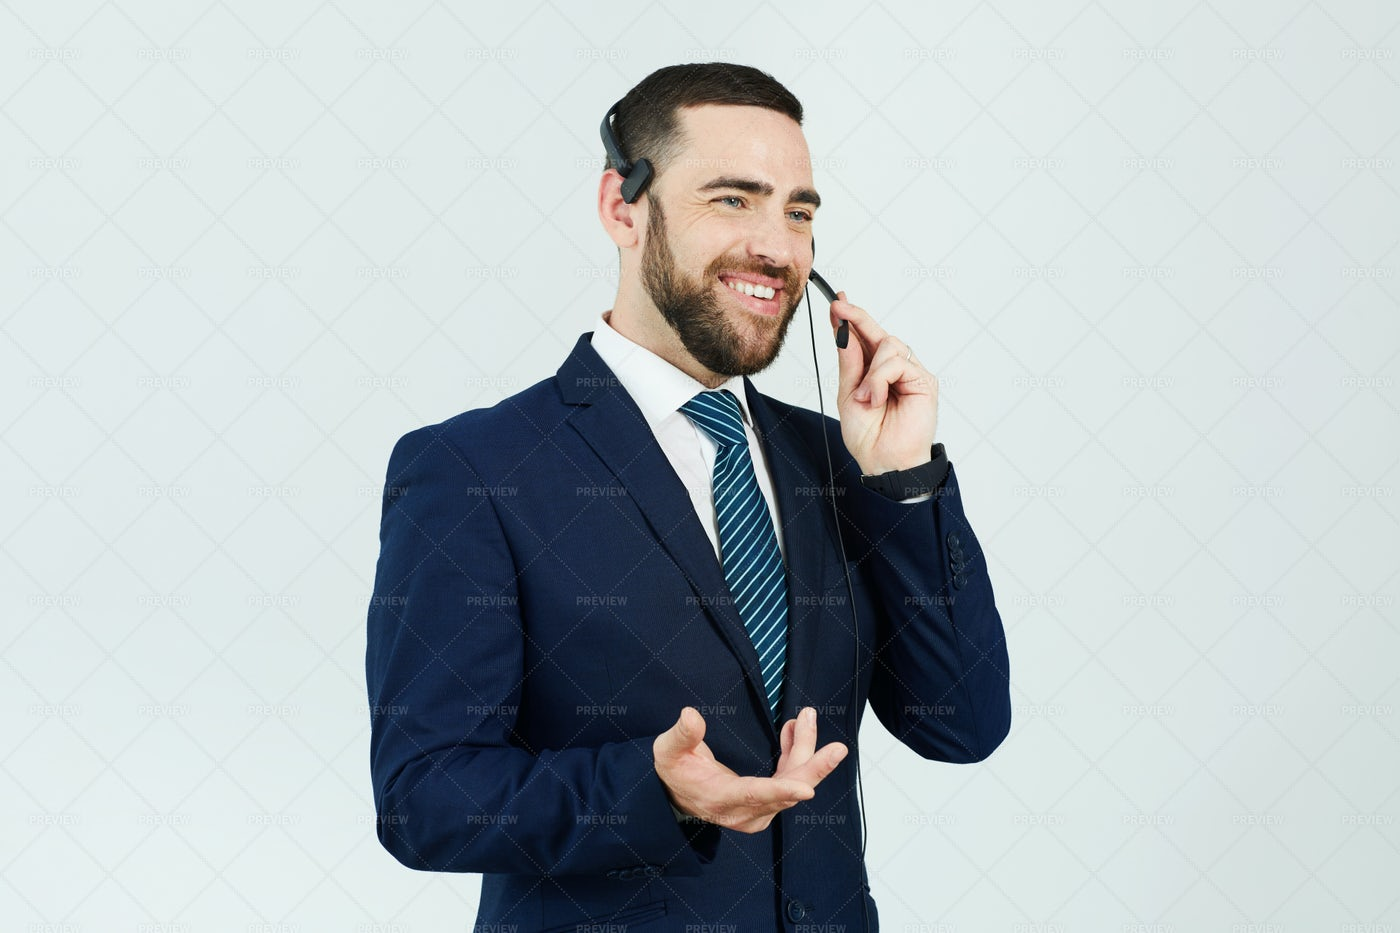 Call Center Operator Answering Phone: Stock Photos